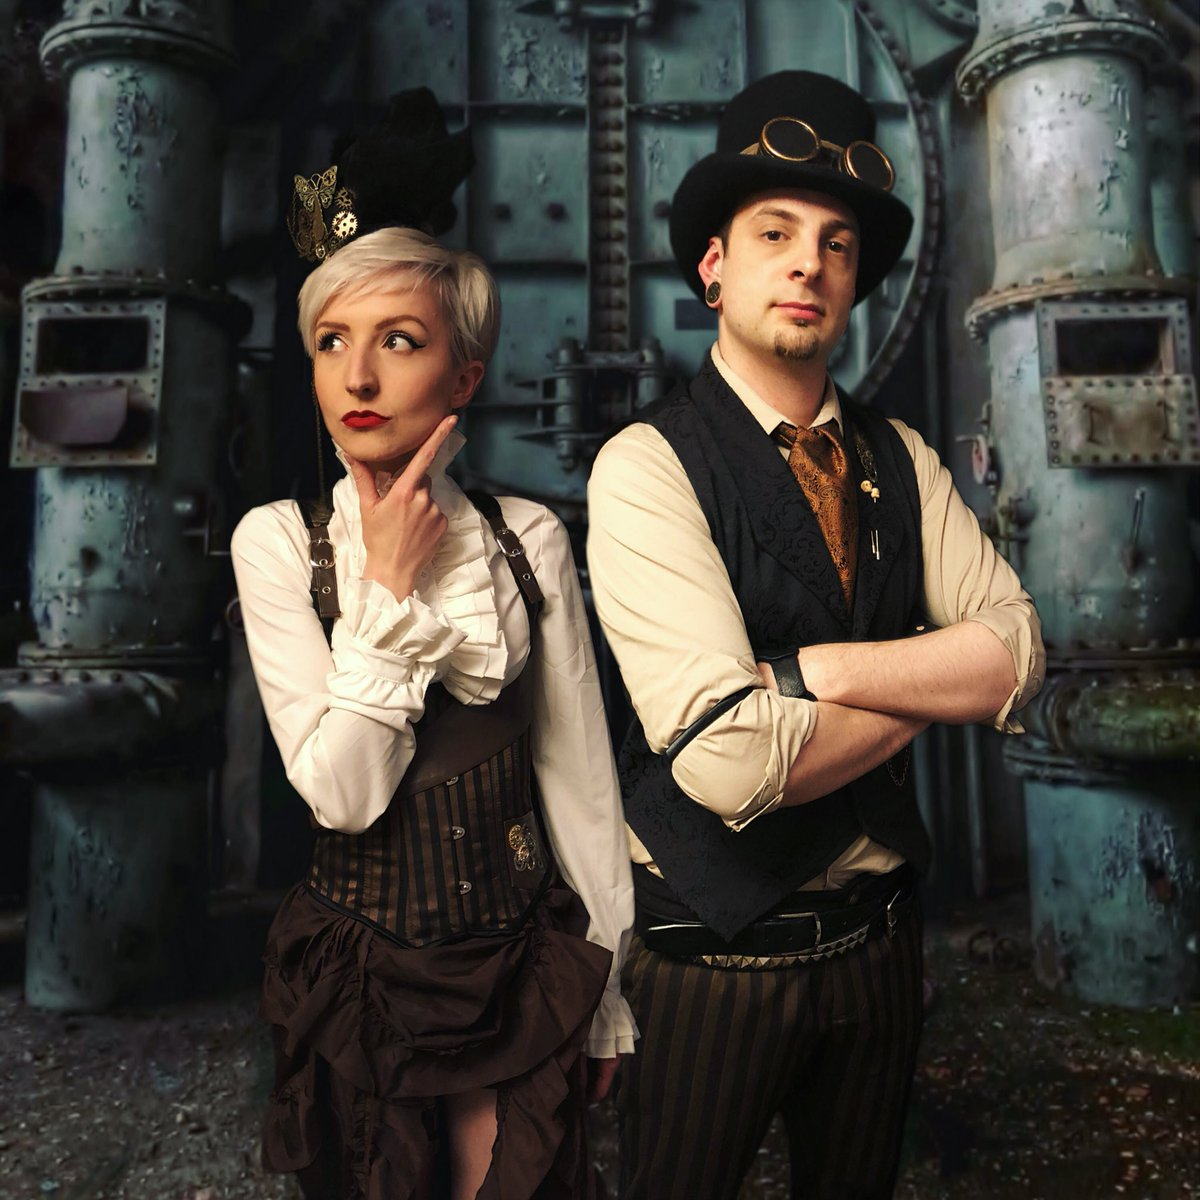 #mondaymarketing - some of you out there know, many of you don't... but I also run @CircusSteampunk a troupe of Steampunk clad Circus performers! give a follow if you like what you see! #monday #steampunkcircus #tophat #circus #performers #follow #steampunk